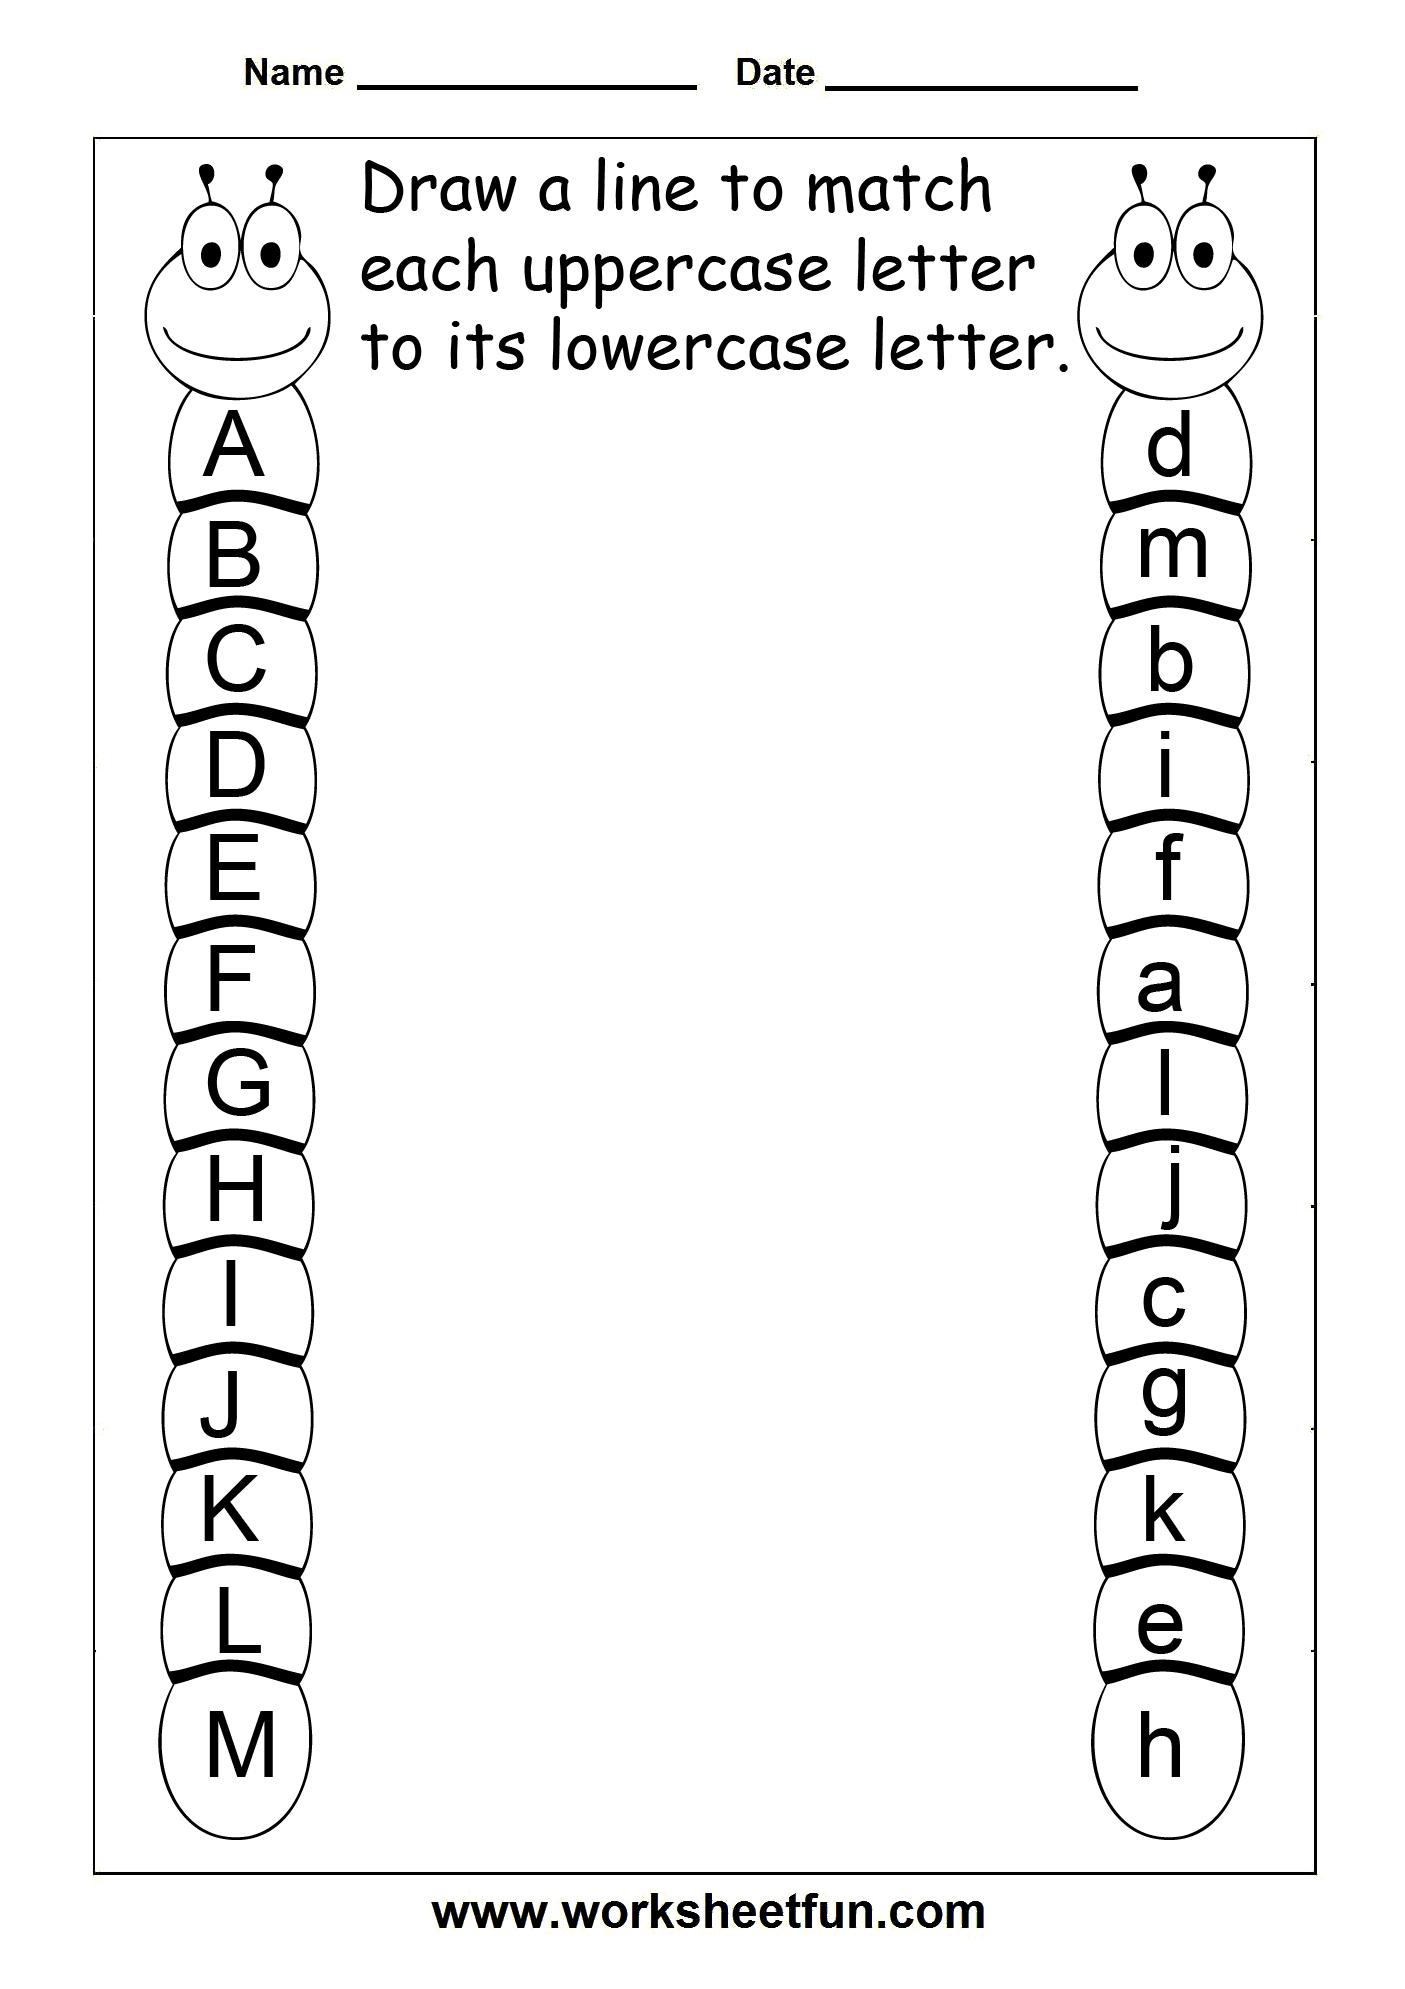 Weirdmailus  Sweet  Images About Work Worksheet On Pinterest  Hidden Pictures  With Extraordinary  Images About Work Worksheet On Pinterest  Hidden Pictures Color By Numbers And Puzzles With Lovely Oobleck Science Experiment Worksheet Also  Digit Multiplication Worksheet In Addition  Times Tables Worksheets And Marine Reported On Worksheet As Well As Printable Handwriting Worksheets For Kindergarten Additionally Parts Of Speech Worksheets With Answers From Pinterestcom With Weirdmailus  Extraordinary  Images About Work Worksheet On Pinterest  Hidden Pictures  With Lovely  Images About Work Worksheet On Pinterest  Hidden Pictures Color By Numbers And Puzzles And Sweet Oobleck Science Experiment Worksheet Also  Digit Multiplication Worksheet In Addition  Times Tables Worksheets From Pinterestcom